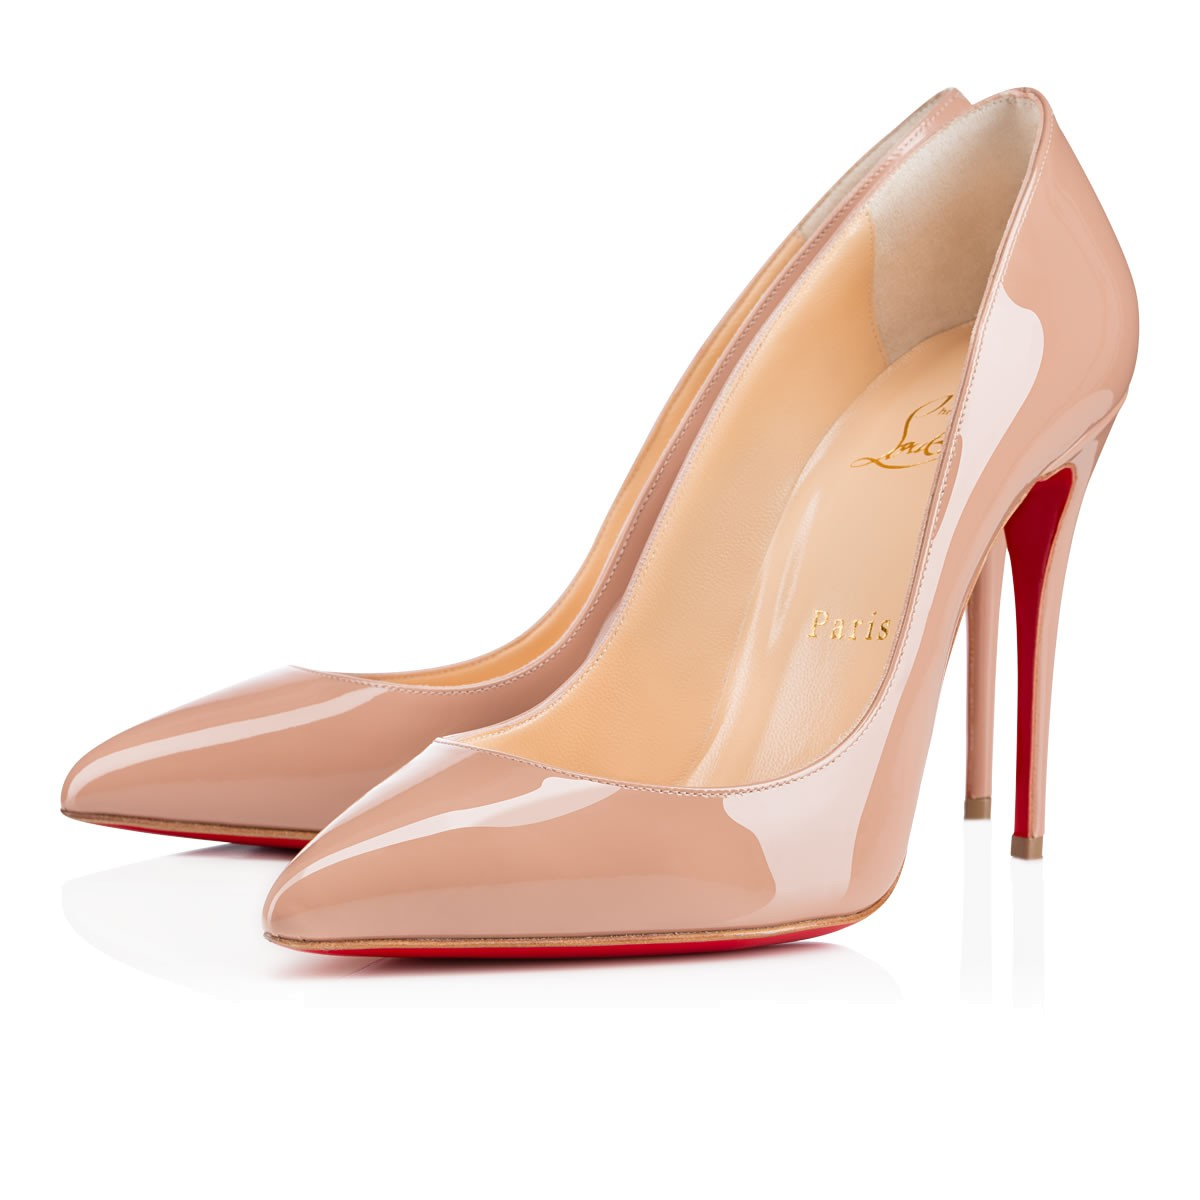 christian louboutin pigalle follies patent